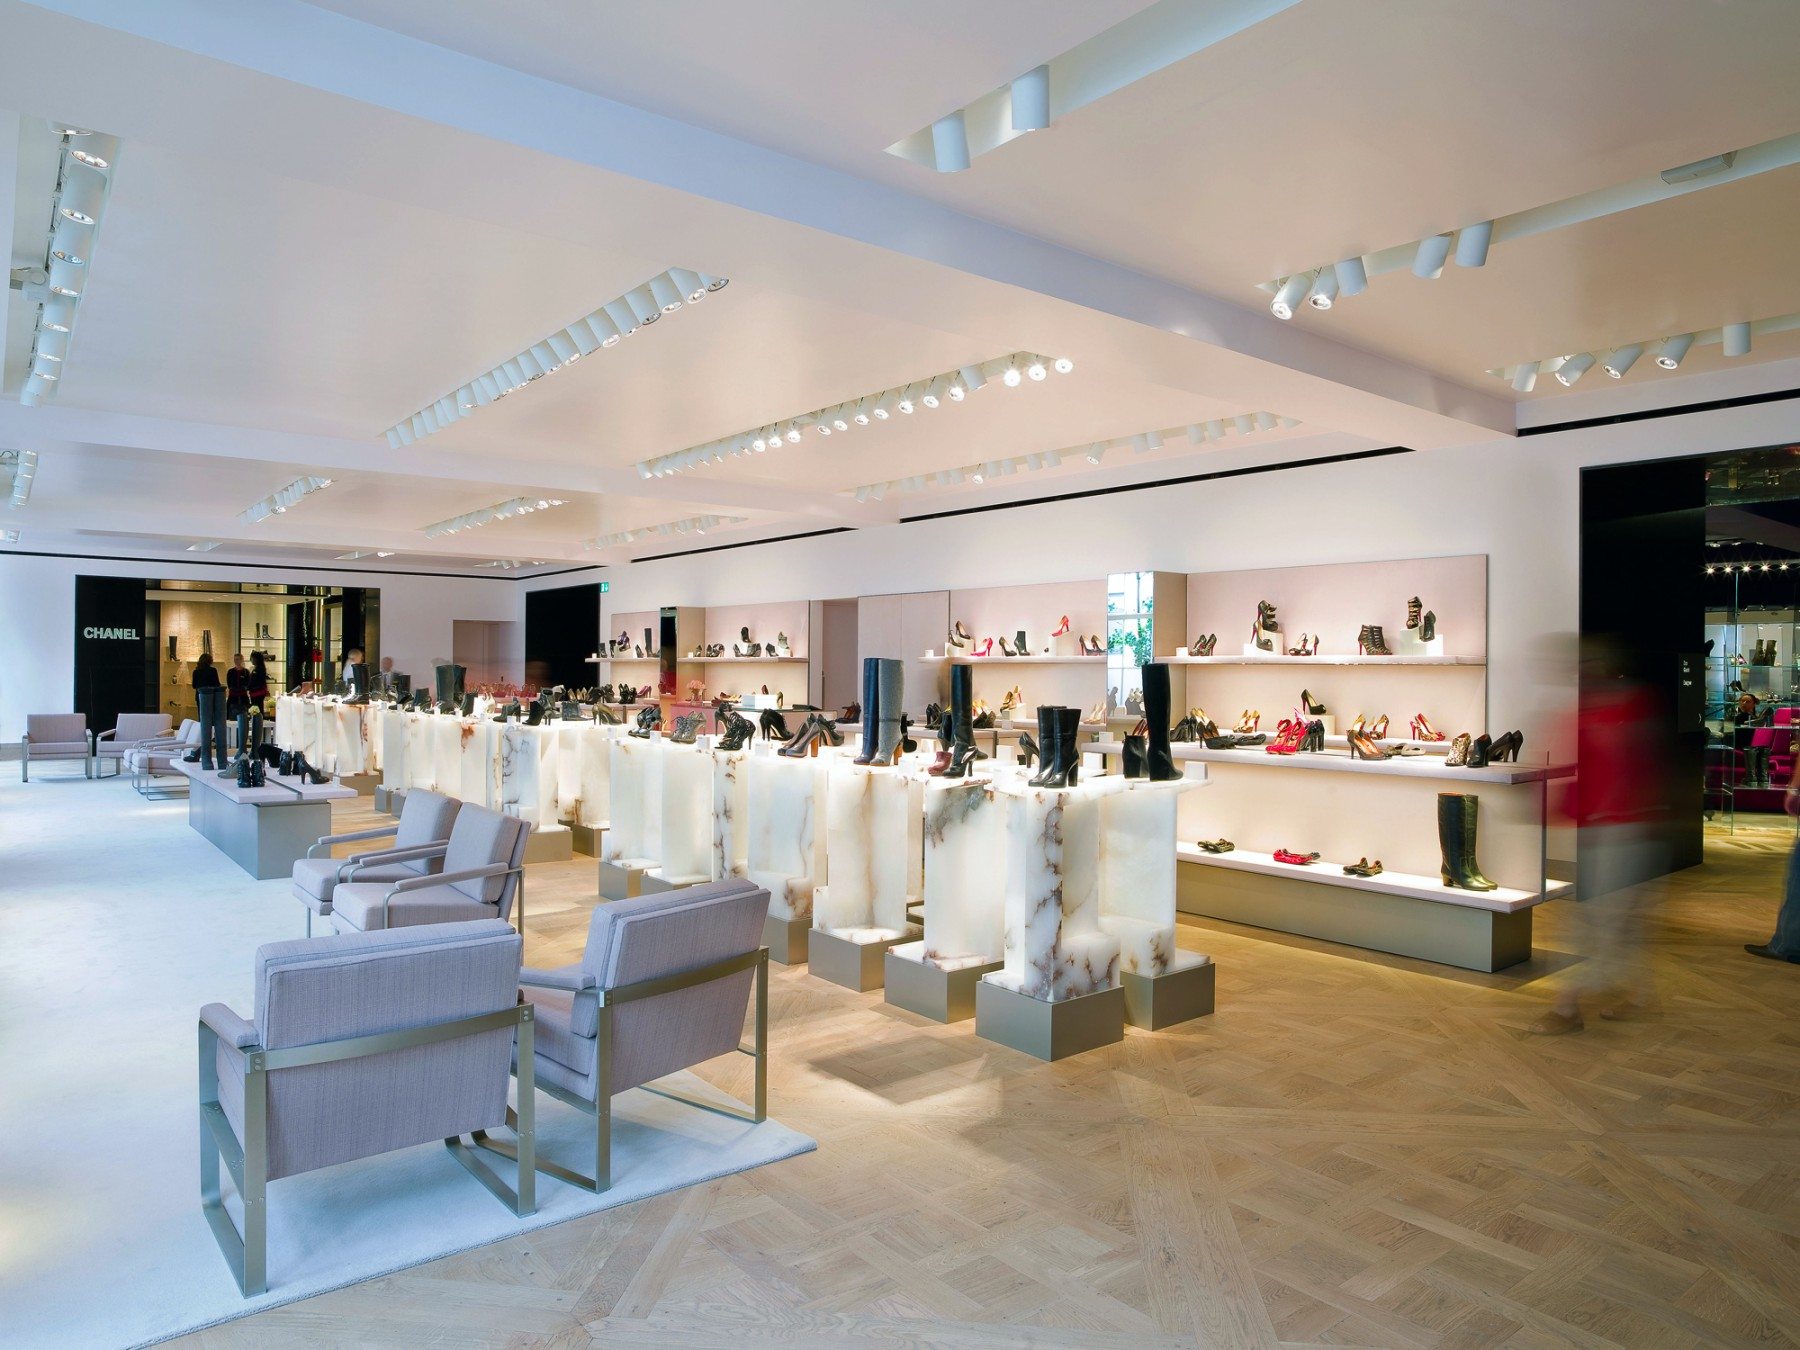 Selfridges-London-designer-fashion-retail-Jamie-Fobert-Architects-shoe-galleries-alabaster-plinths